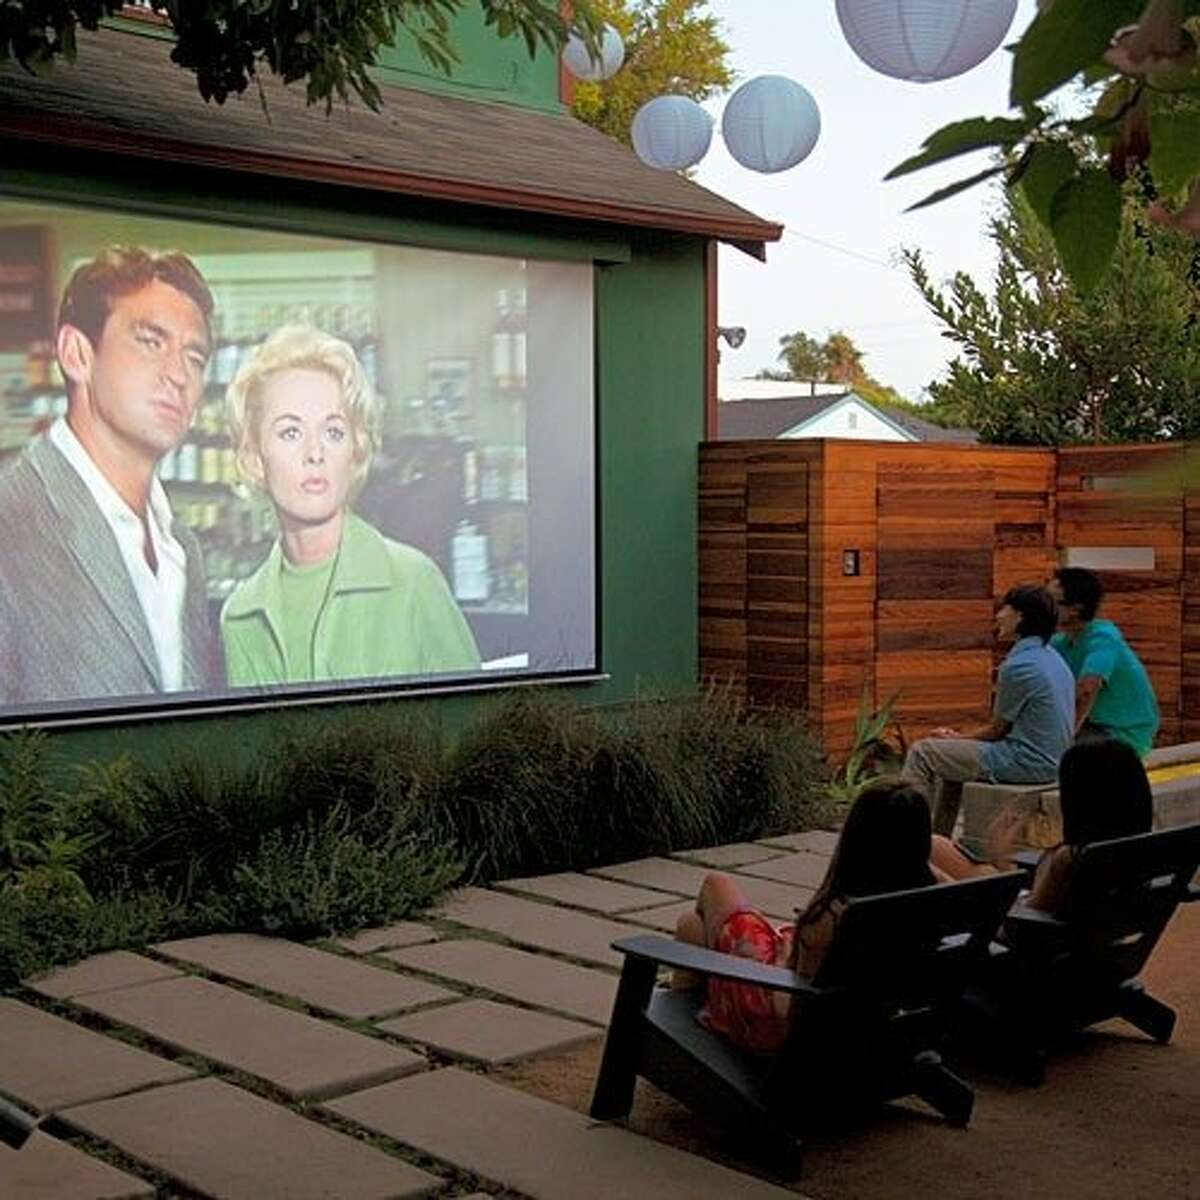 HAVE A MOVIE MARATHON Take the fun of Netflix outdoors, and invite your friends and family over for a movie marathon. If you find yourself with a projector, you can always hang up a white bed sheet or have the screen project onto the side of your house.